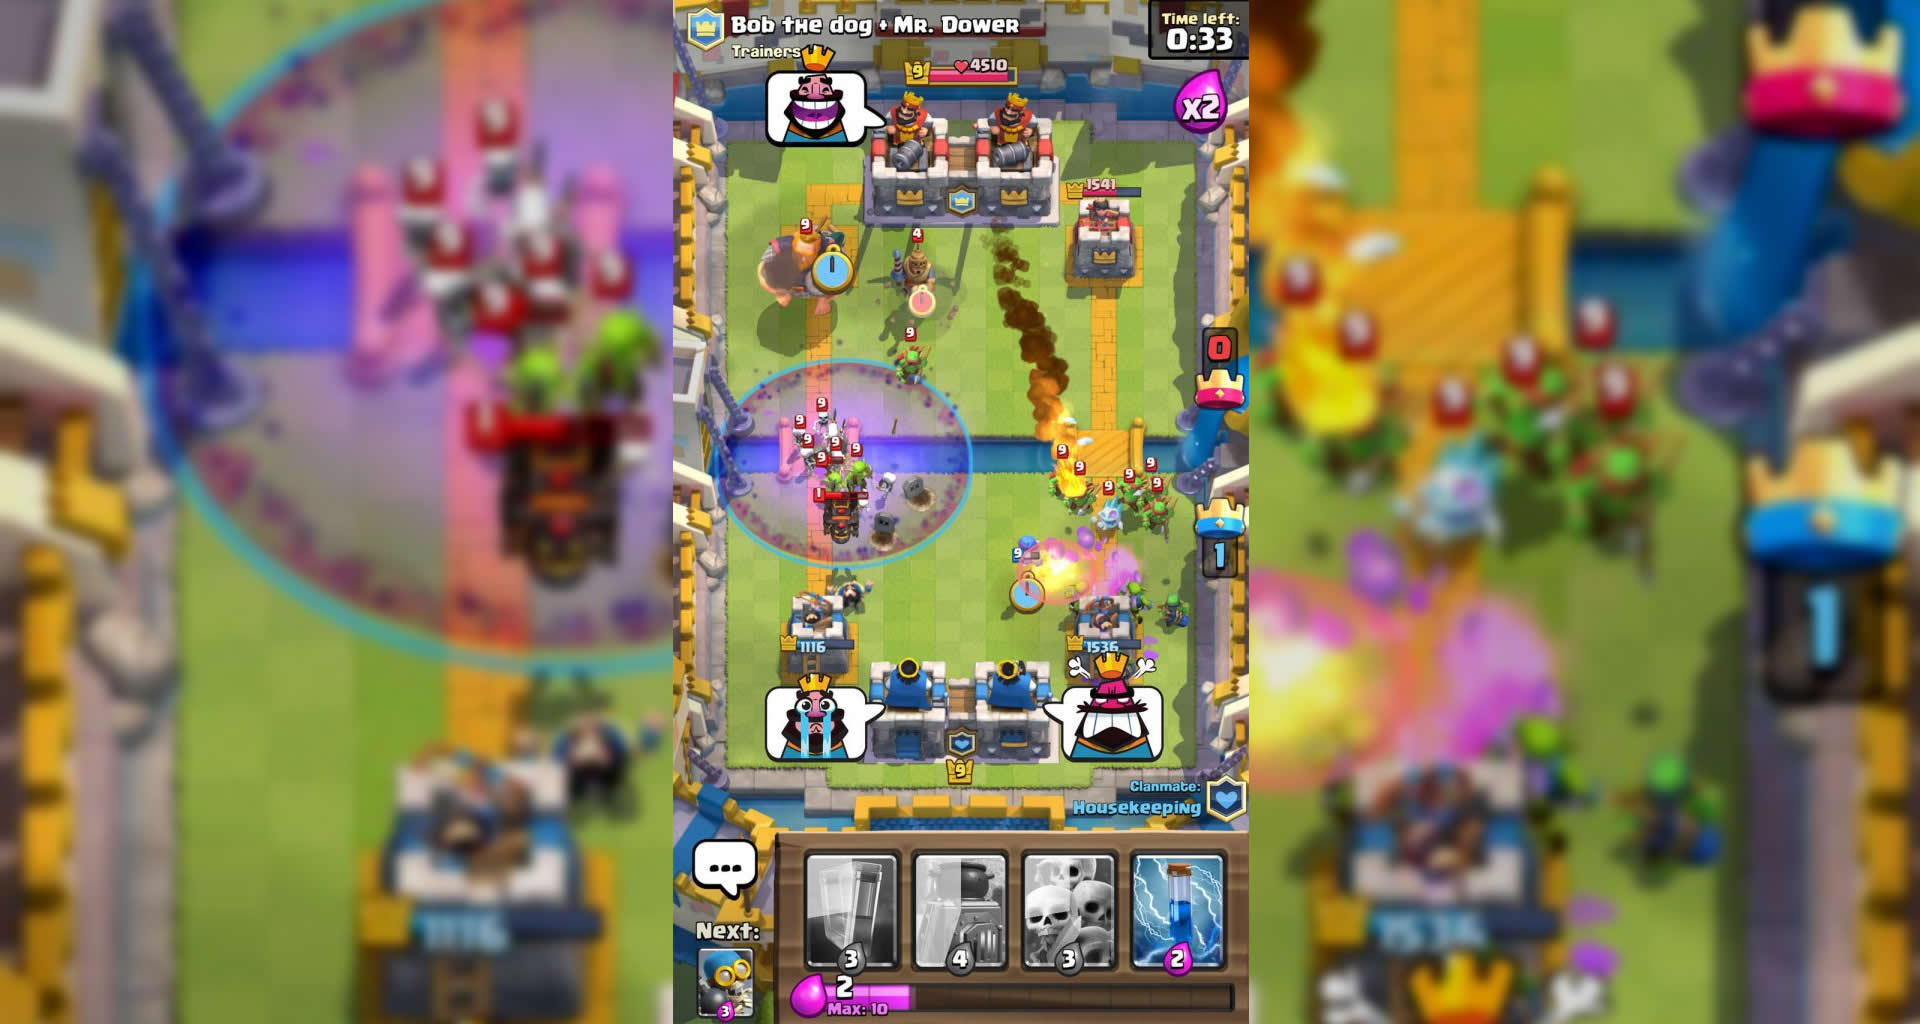 Modojo | Clash Royale Getting New 2v2 'Clan Battle' Gameplay Mode